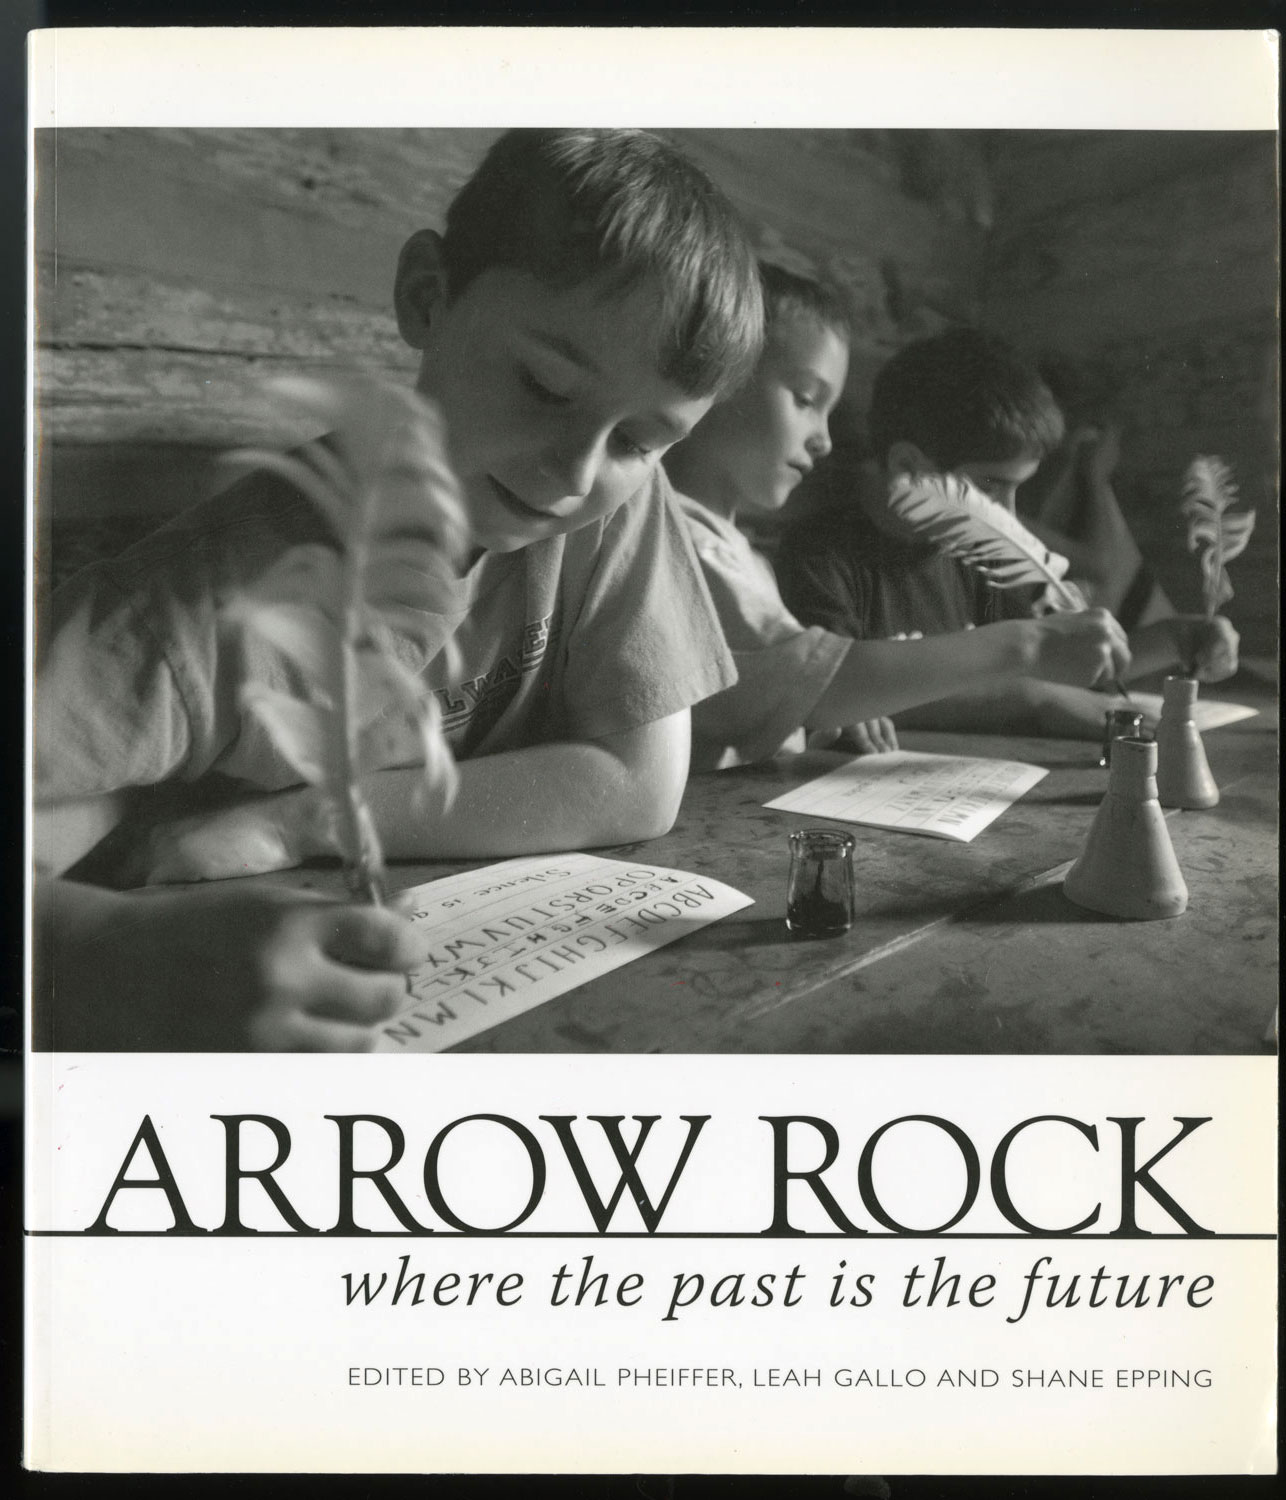 Arrow Rock: Where The Past Is The Future - Picture Editor, Designer, Contributing Photographer & Story© 2008 Abigail Pheiffer, Leah Gallo, Shane Epping, Rita Reed2010 Osmund Overby Award WinnerClay's Story (by Leah Gallo)https://journalism.missouri.edu/2010/03/missouri-school-of-journalism-book-on-arrow-rock-wins-the-prestigious-2010-osmund-overby-award/